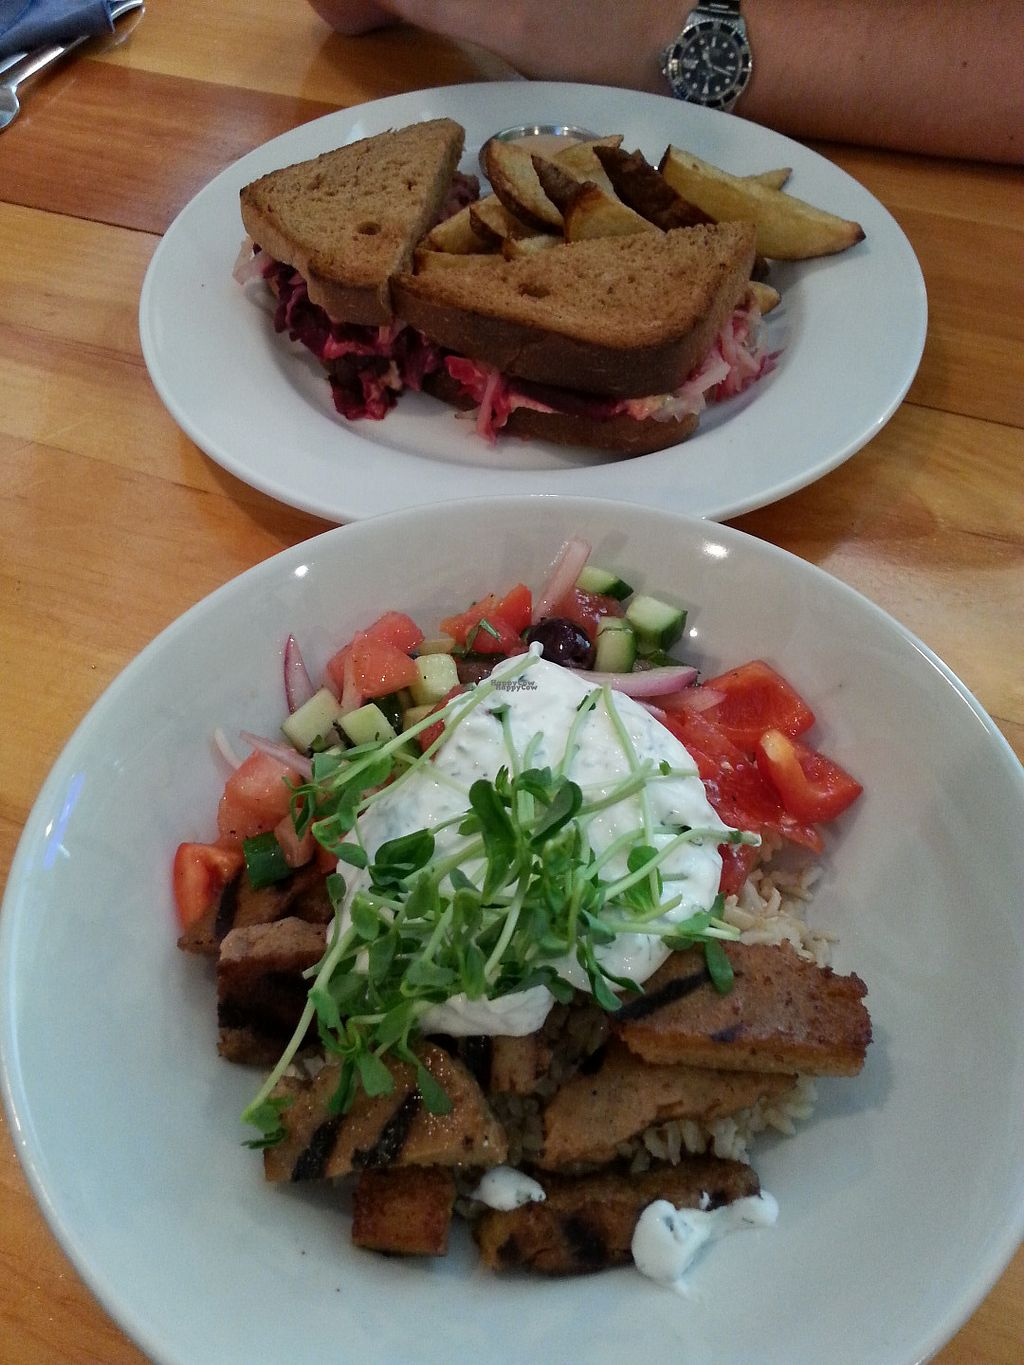 """Photo of Rise Above Restaurant and Bakery  by <a href=""""/members/profile/Vegan%20GiGi"""">Vegan GiGi</a> <br/>Seitan souvlaki bowl, and smoked beet reuben with potato wedges. YUM <br/> September 25, 2016  - <a href='/contact/abuse/image/26245/177841'>Report</a>"""